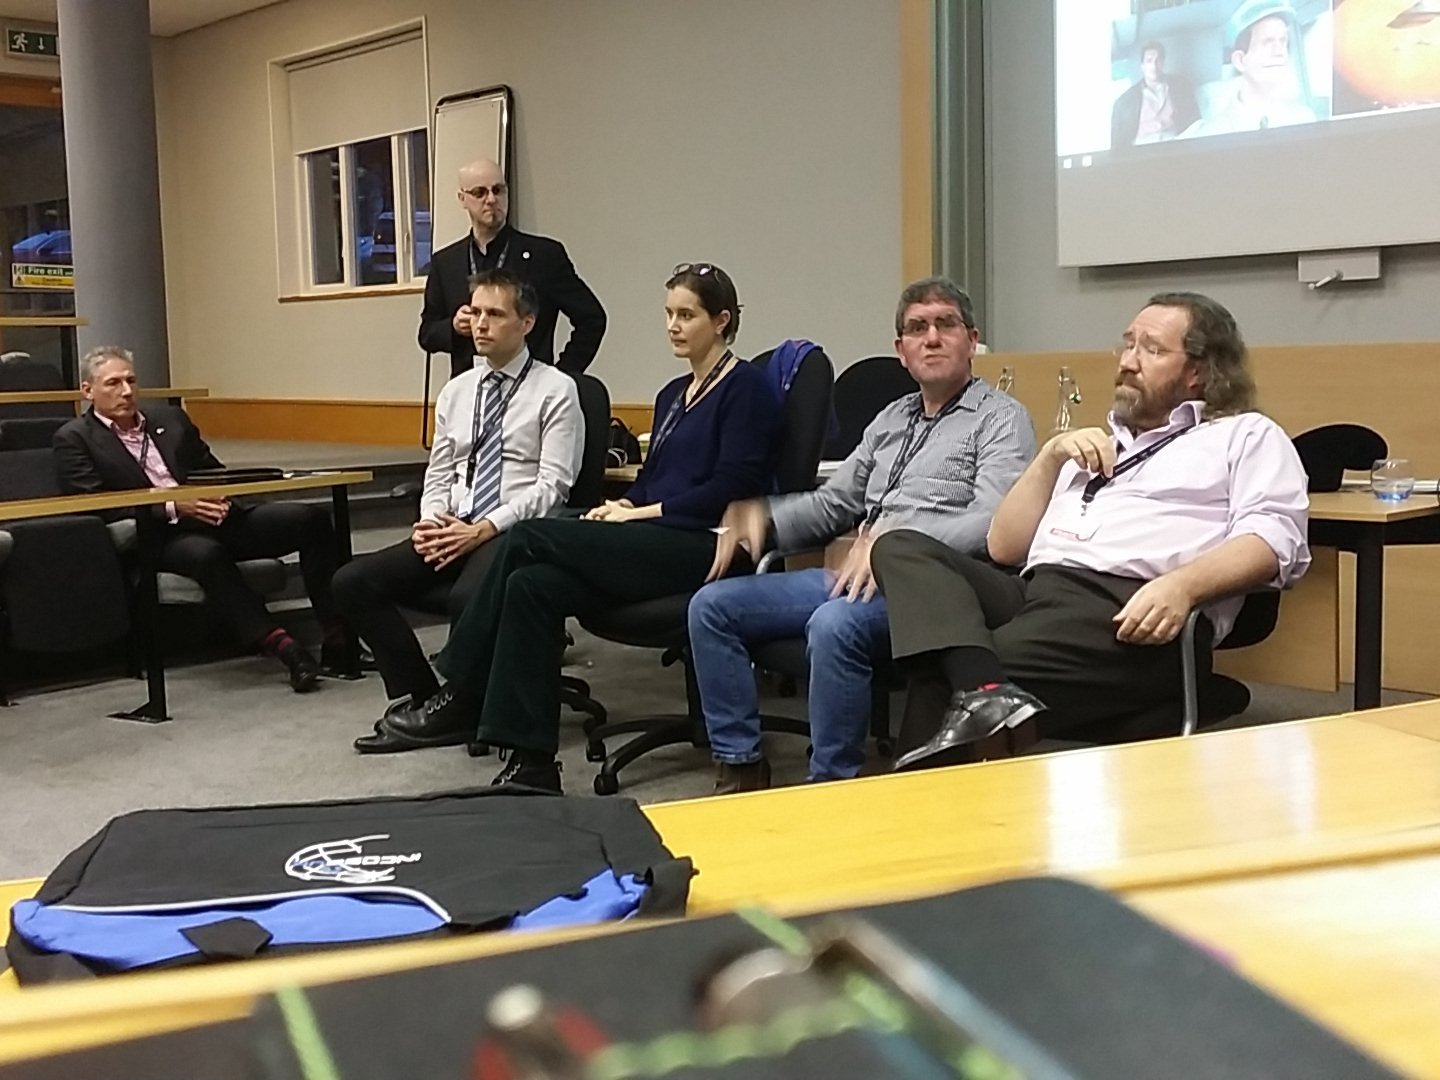 Panel discussion at #asec2016 @incoseuk  all things interconnected https://t.co/9Z9XOn3MIw